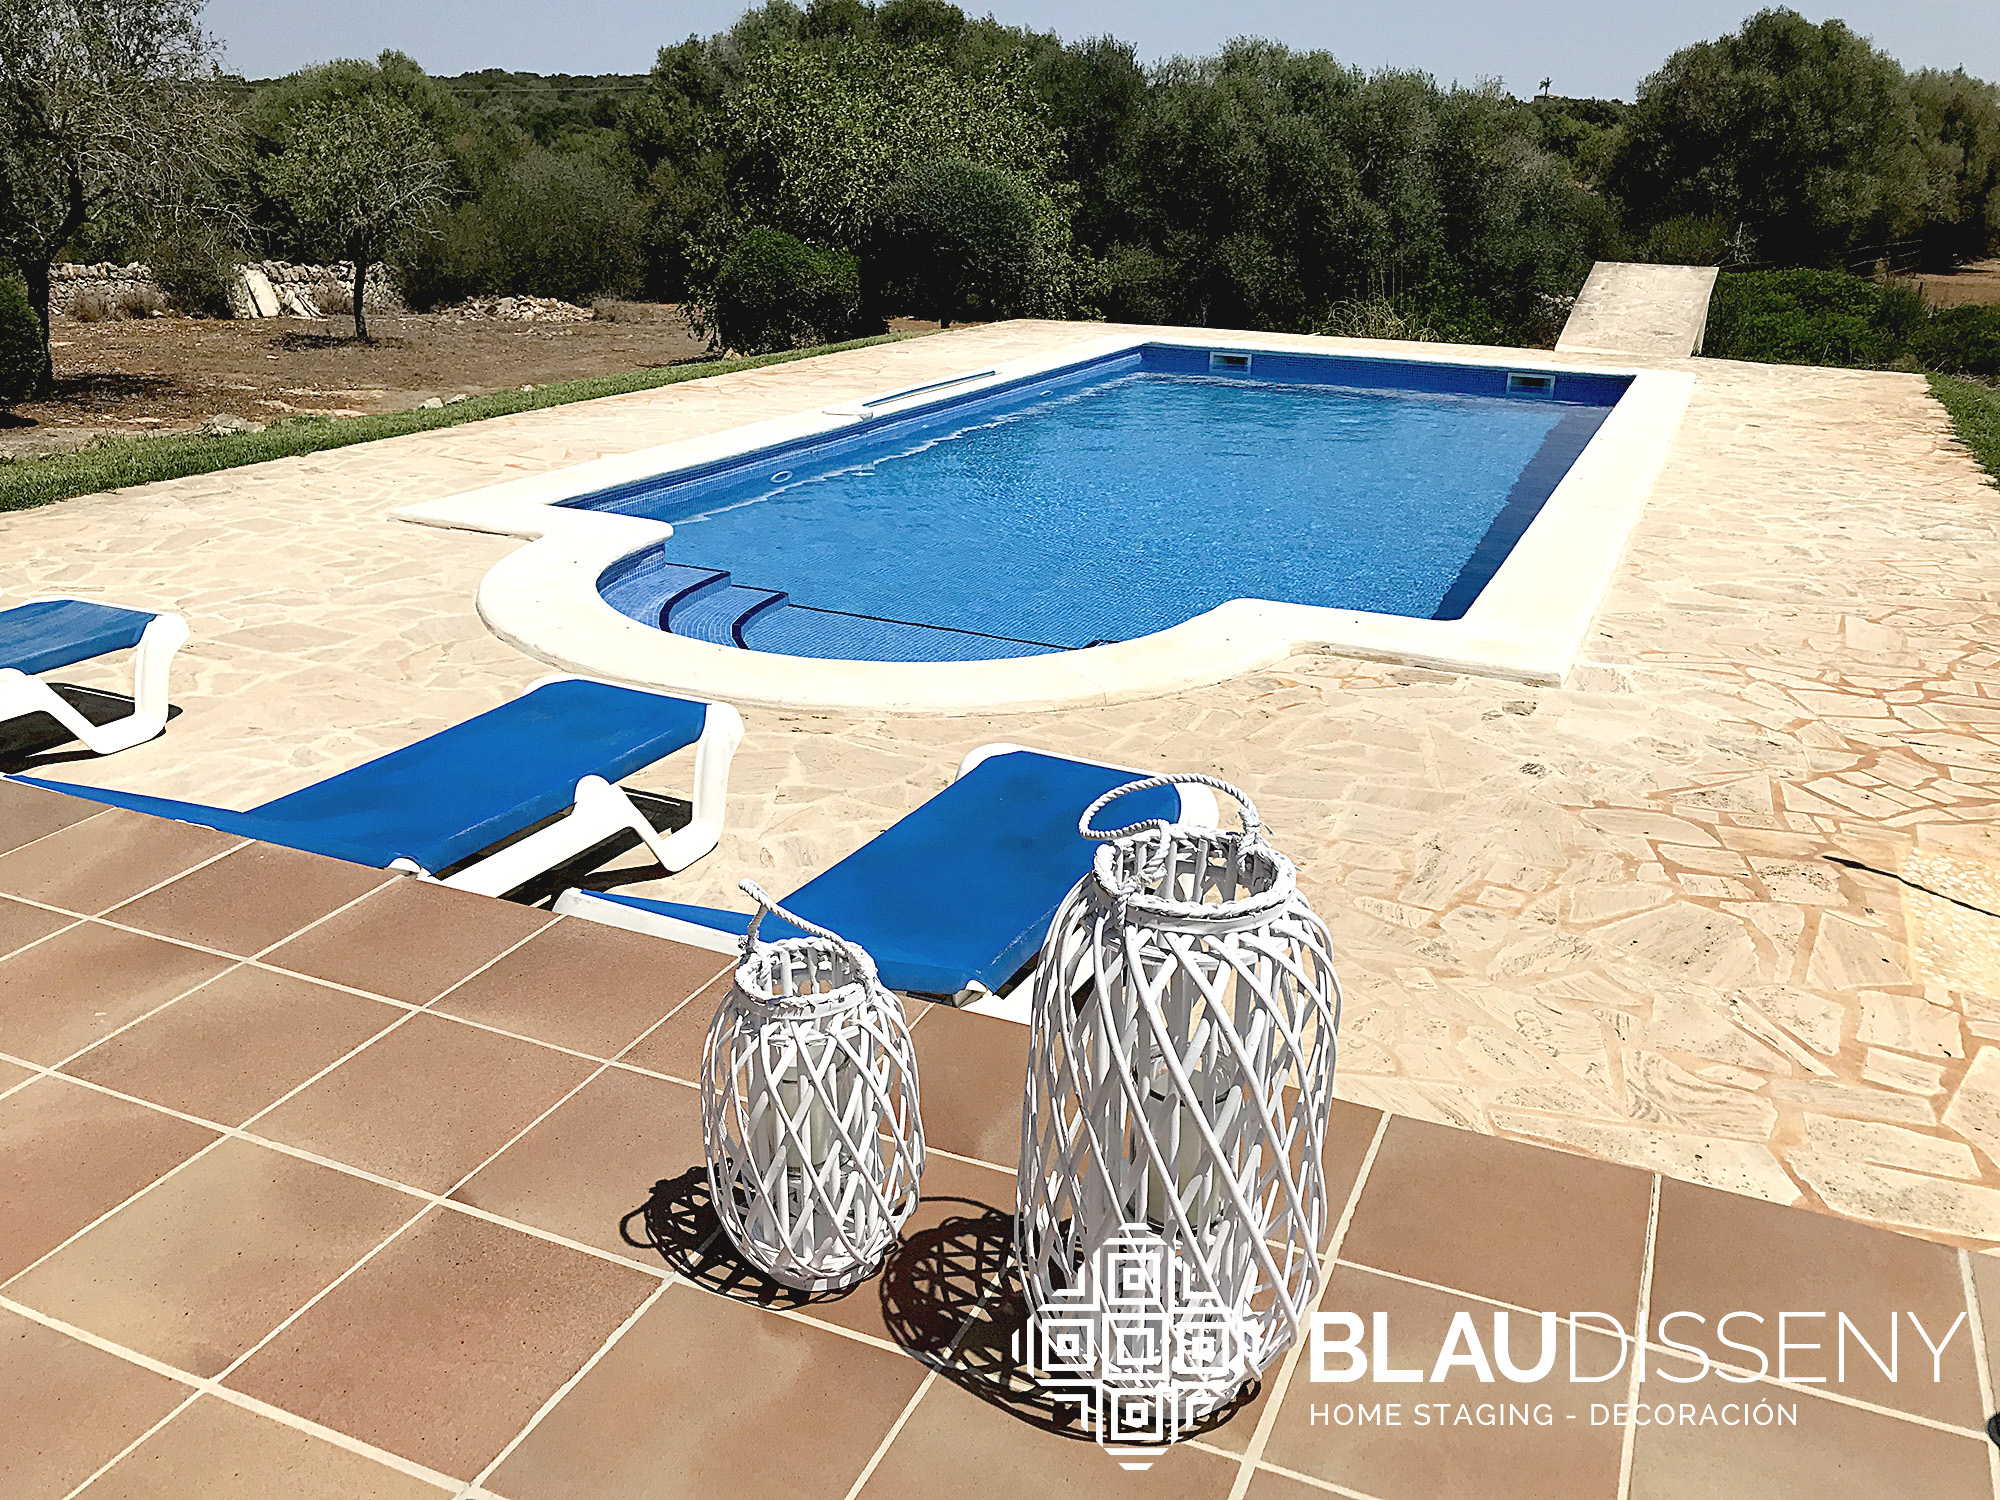 Blaudisseny-home-staging-ses-salines-piscina-1-despues-logo